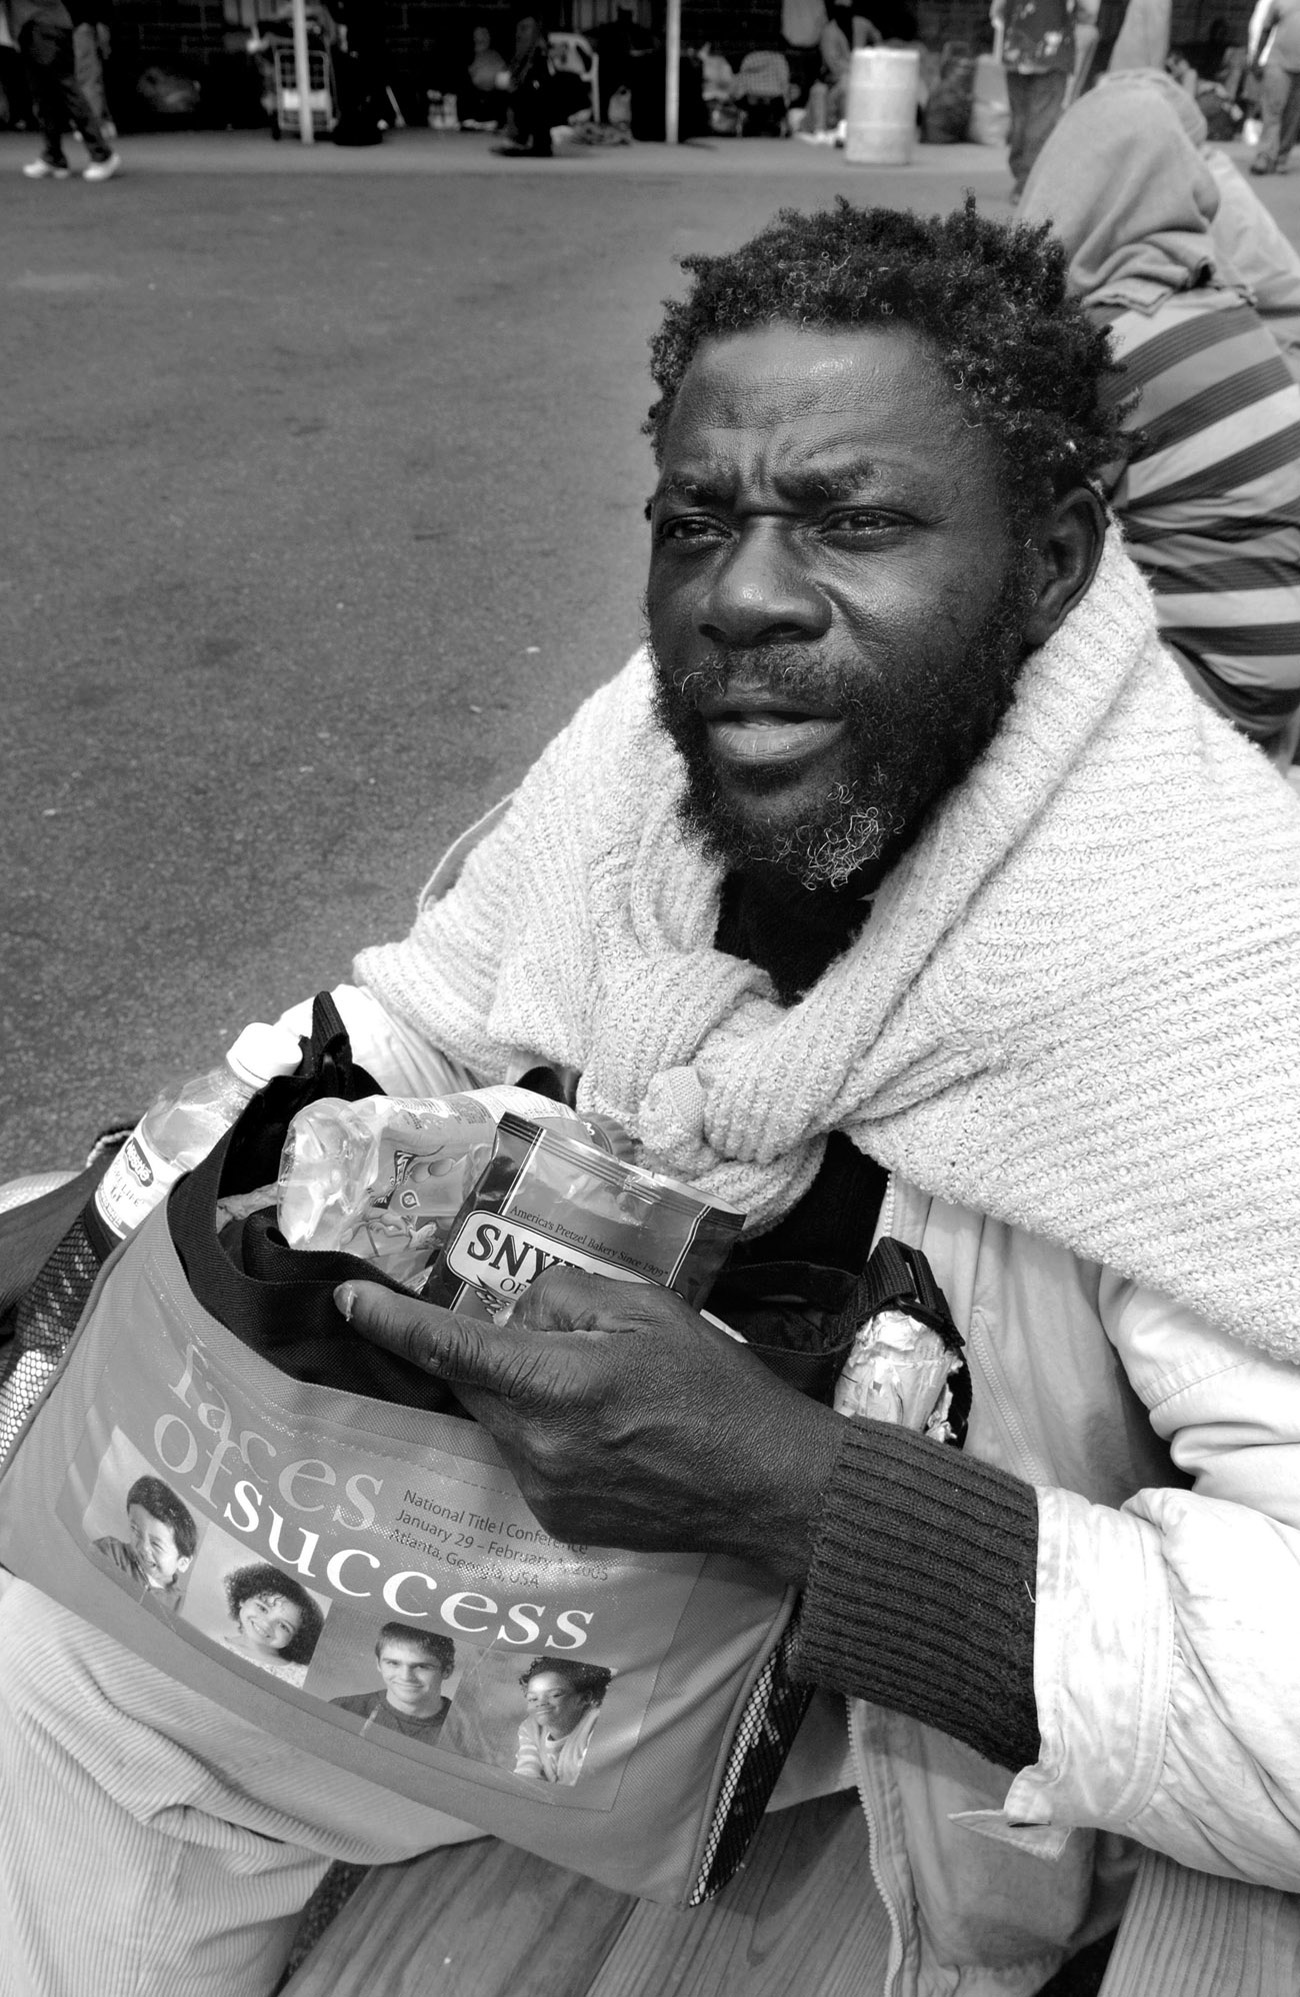 Homless, unemployed and with nowhere else to go, a man waits for the shelter to open for a Thanksgiving Day meal.